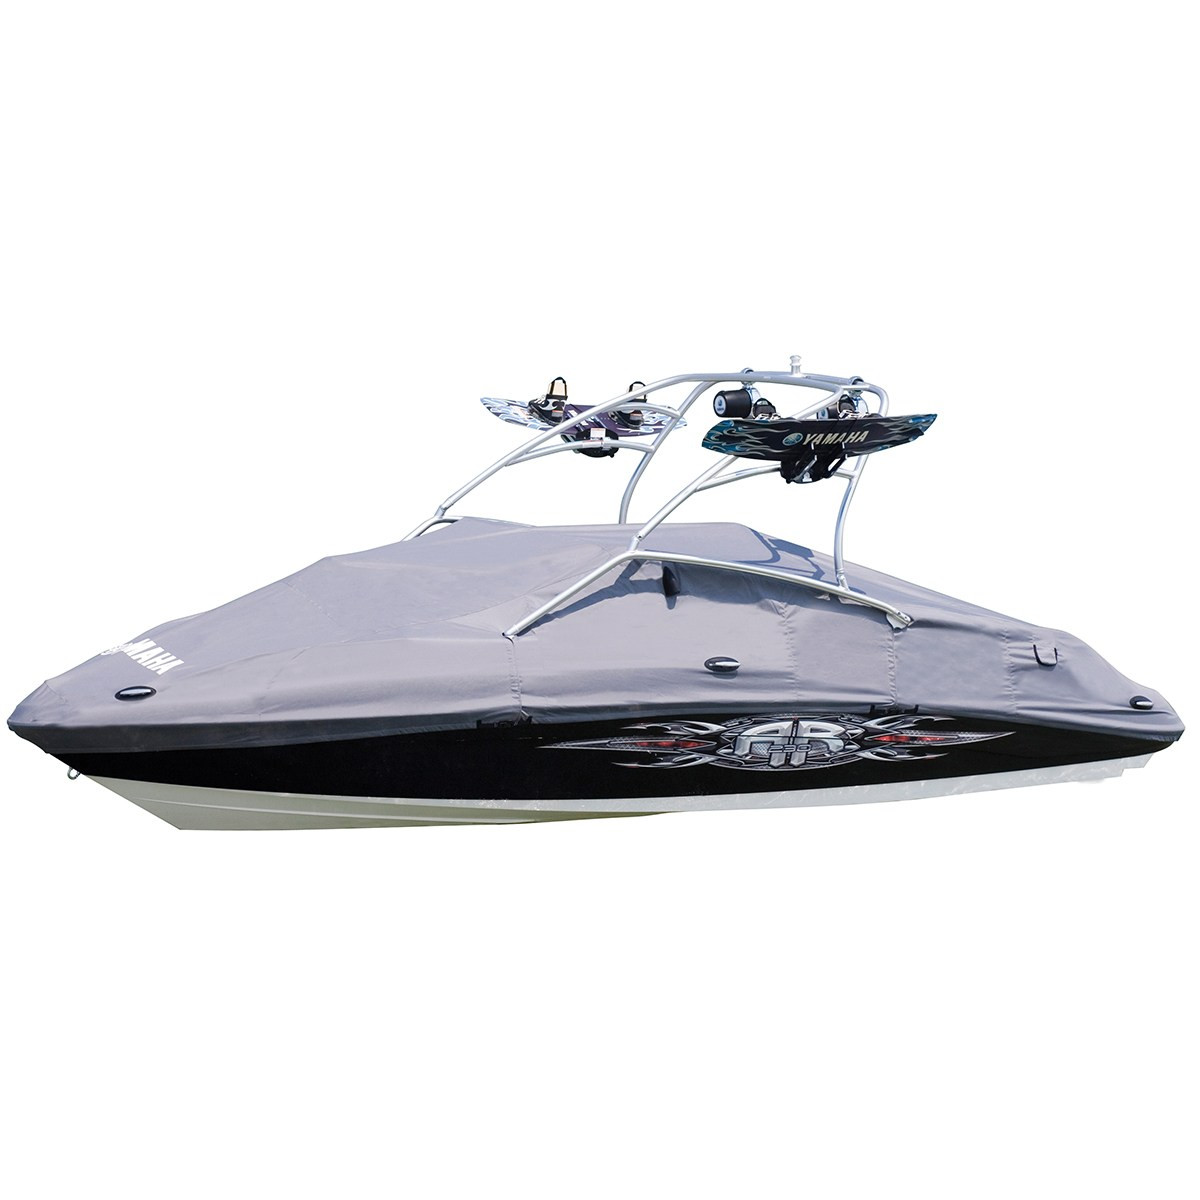 Yamaha Premium Tower Mooring Cover Light Gray 2015 2016 242 Limited S 2016 242x E Series Mar 242tr Gy 15